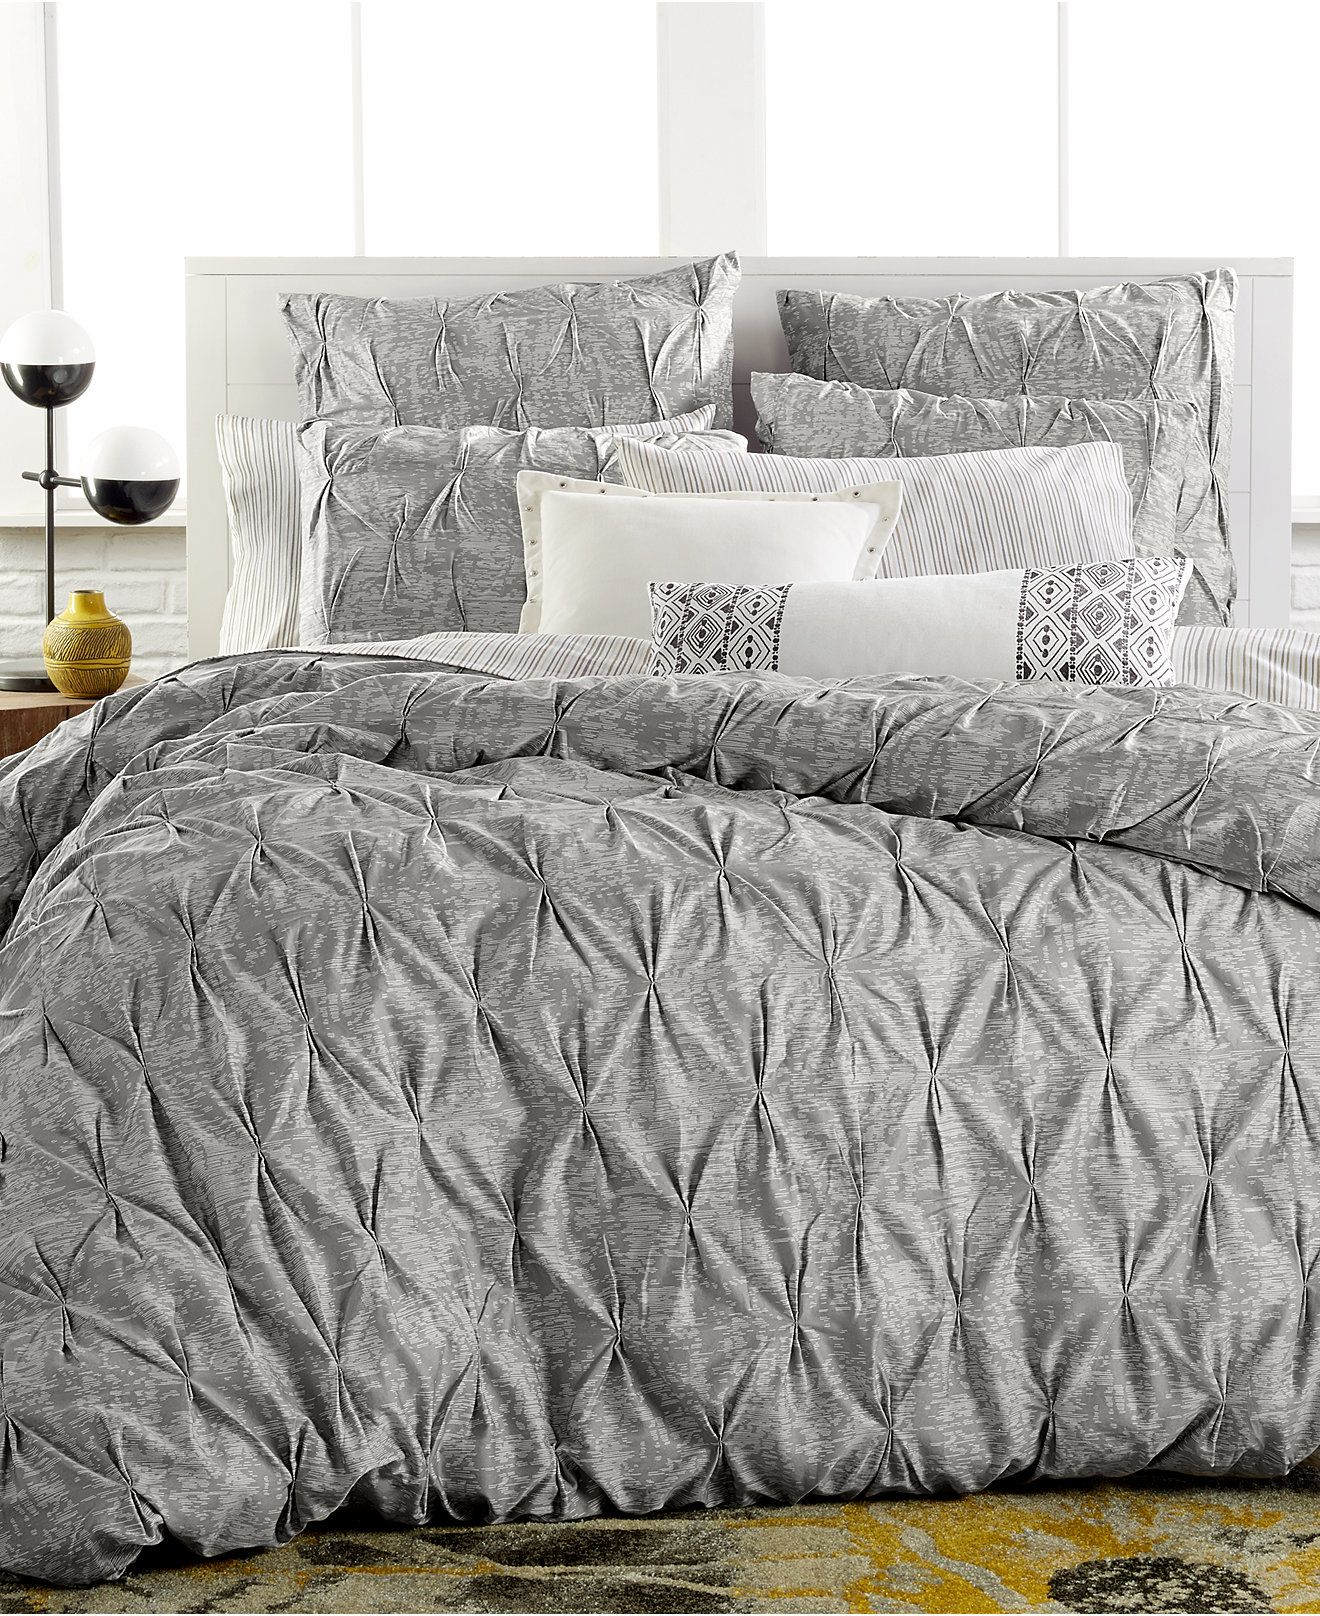 Comforter Cover Full Bar Iii Diamond Pleat Full Queen Duvet Cover Bedding